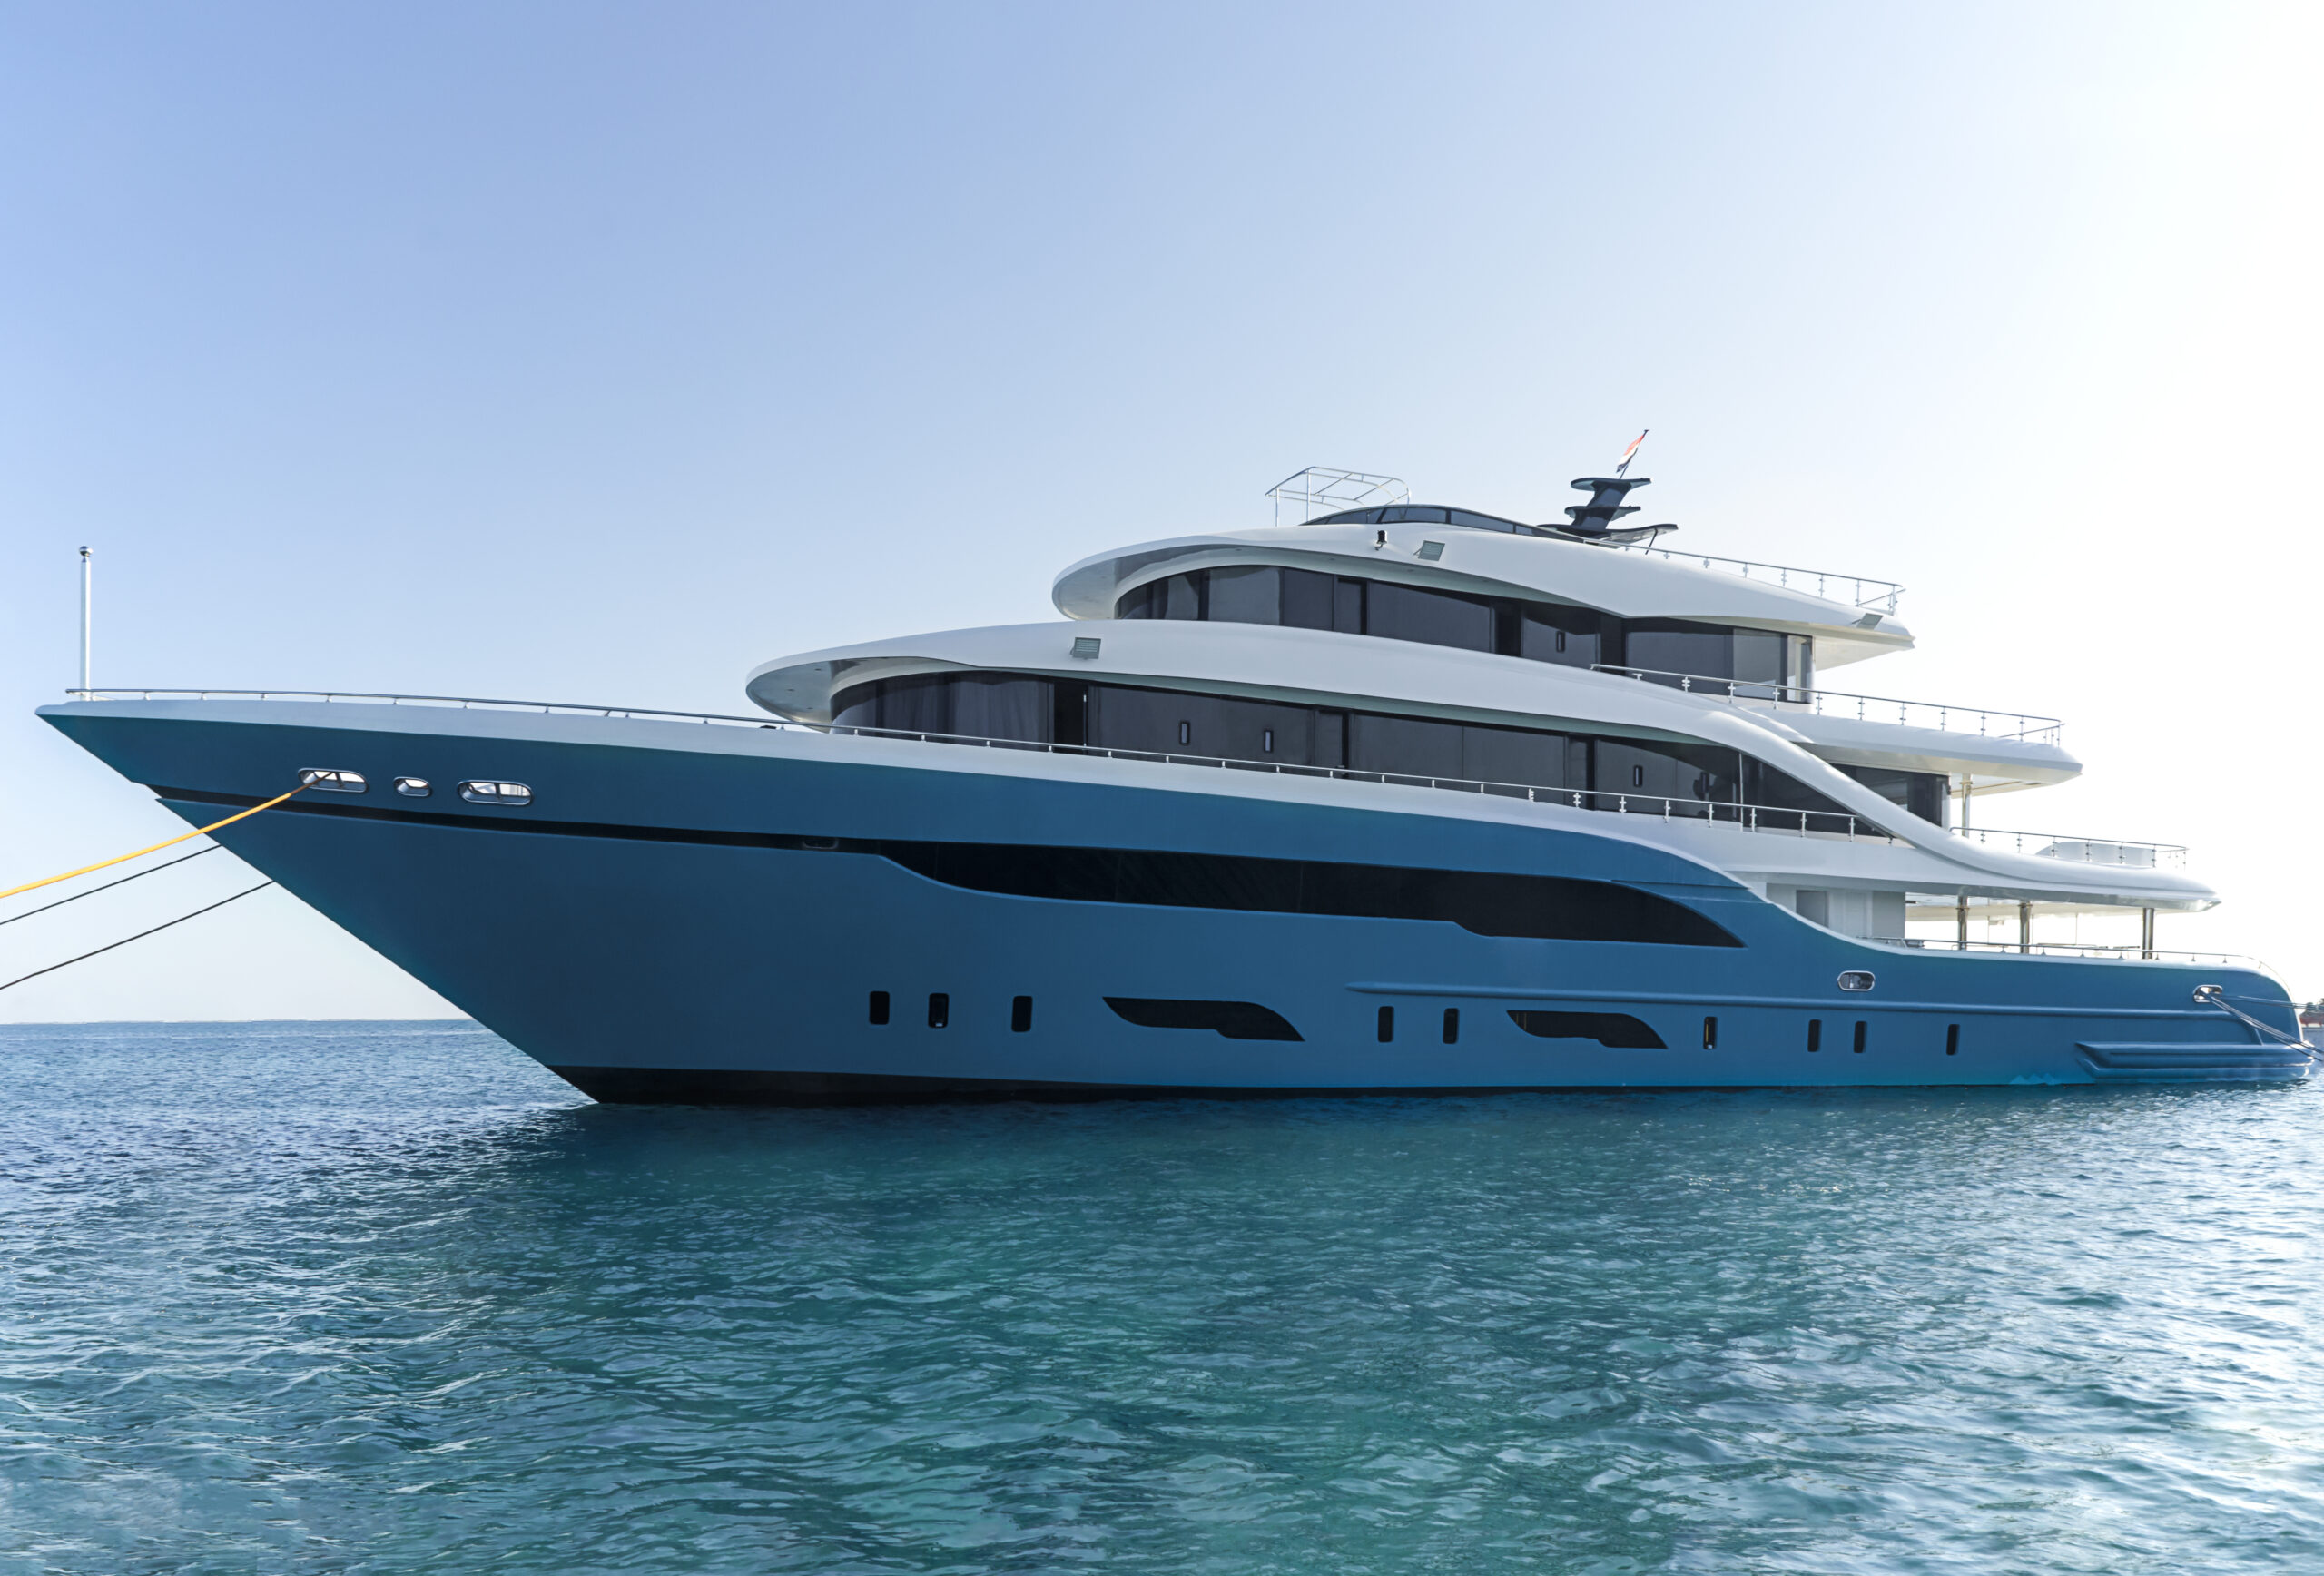 barco turquoise mar rojo 2021